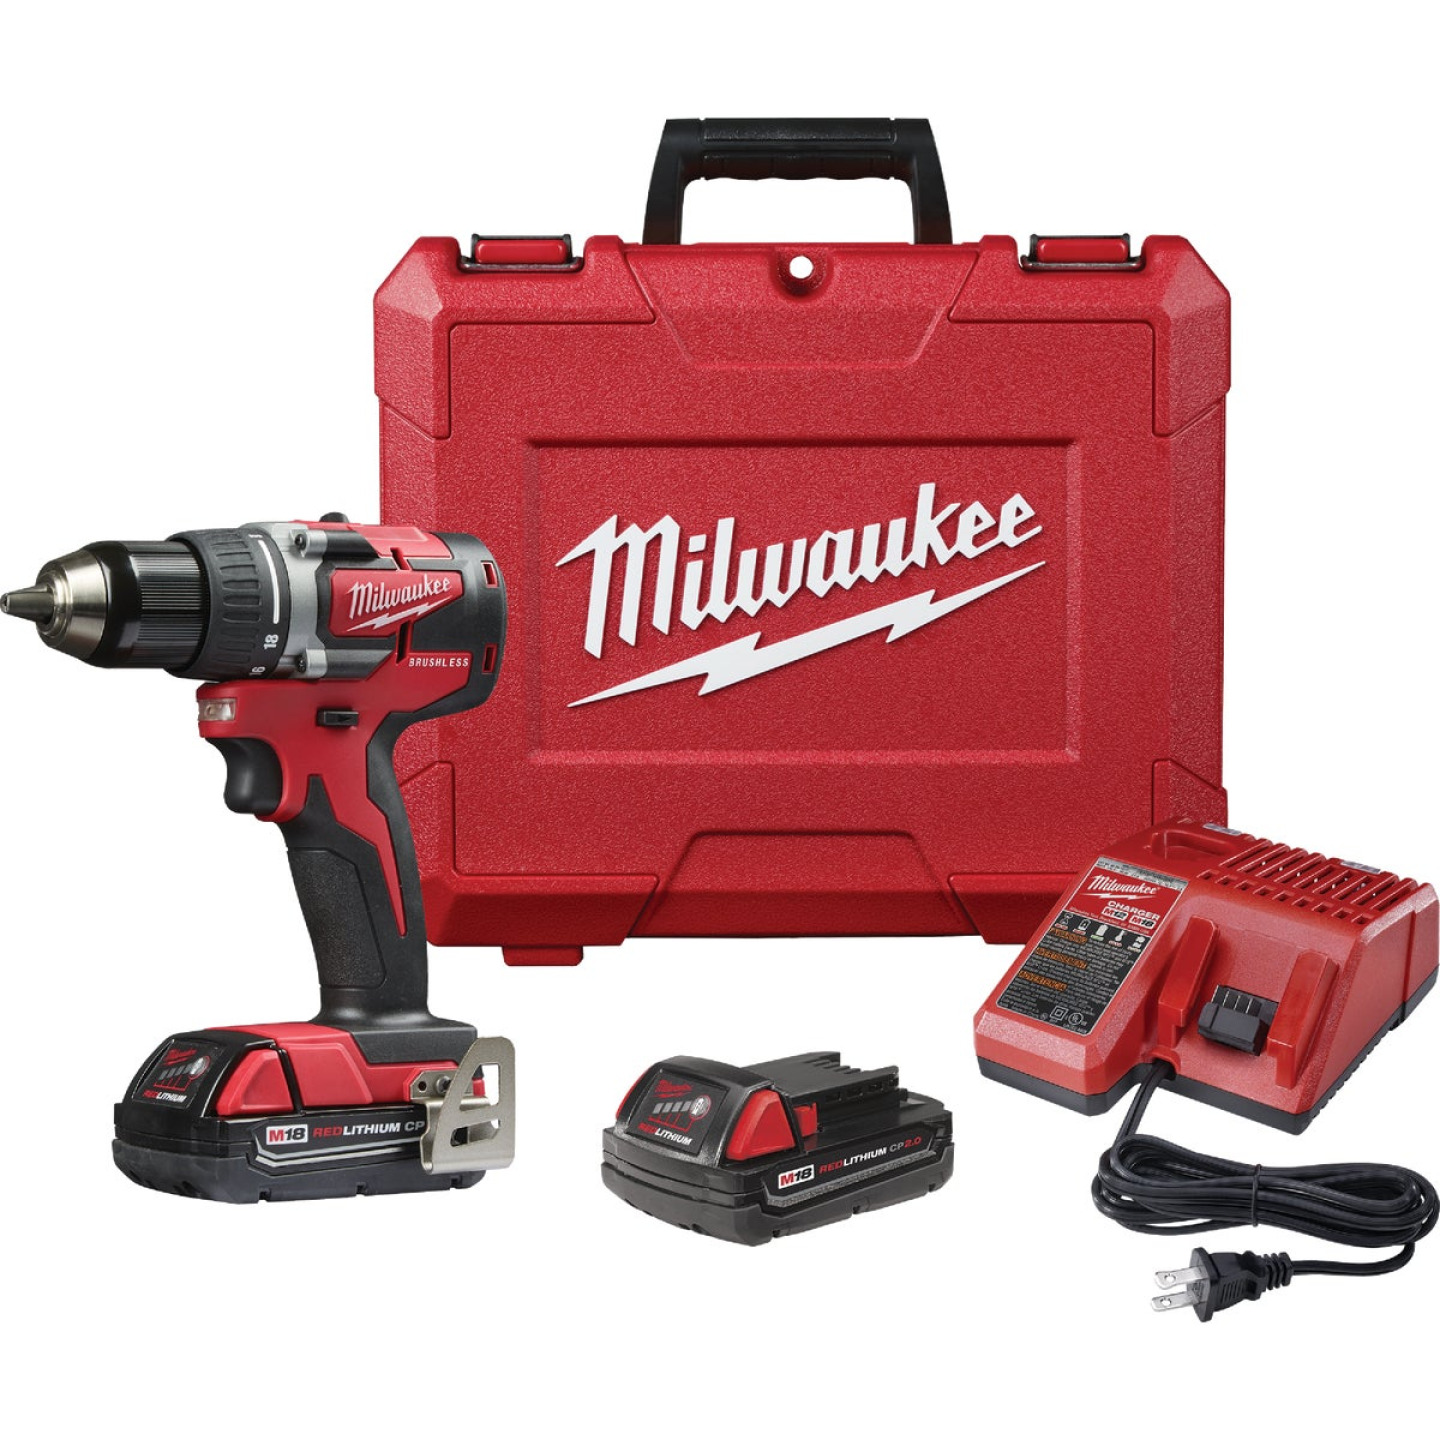 Milwaukee M18 18 Volt Lithium-Ion 1/2 In. Brushless Compact Cordless Drill Kit Image 1